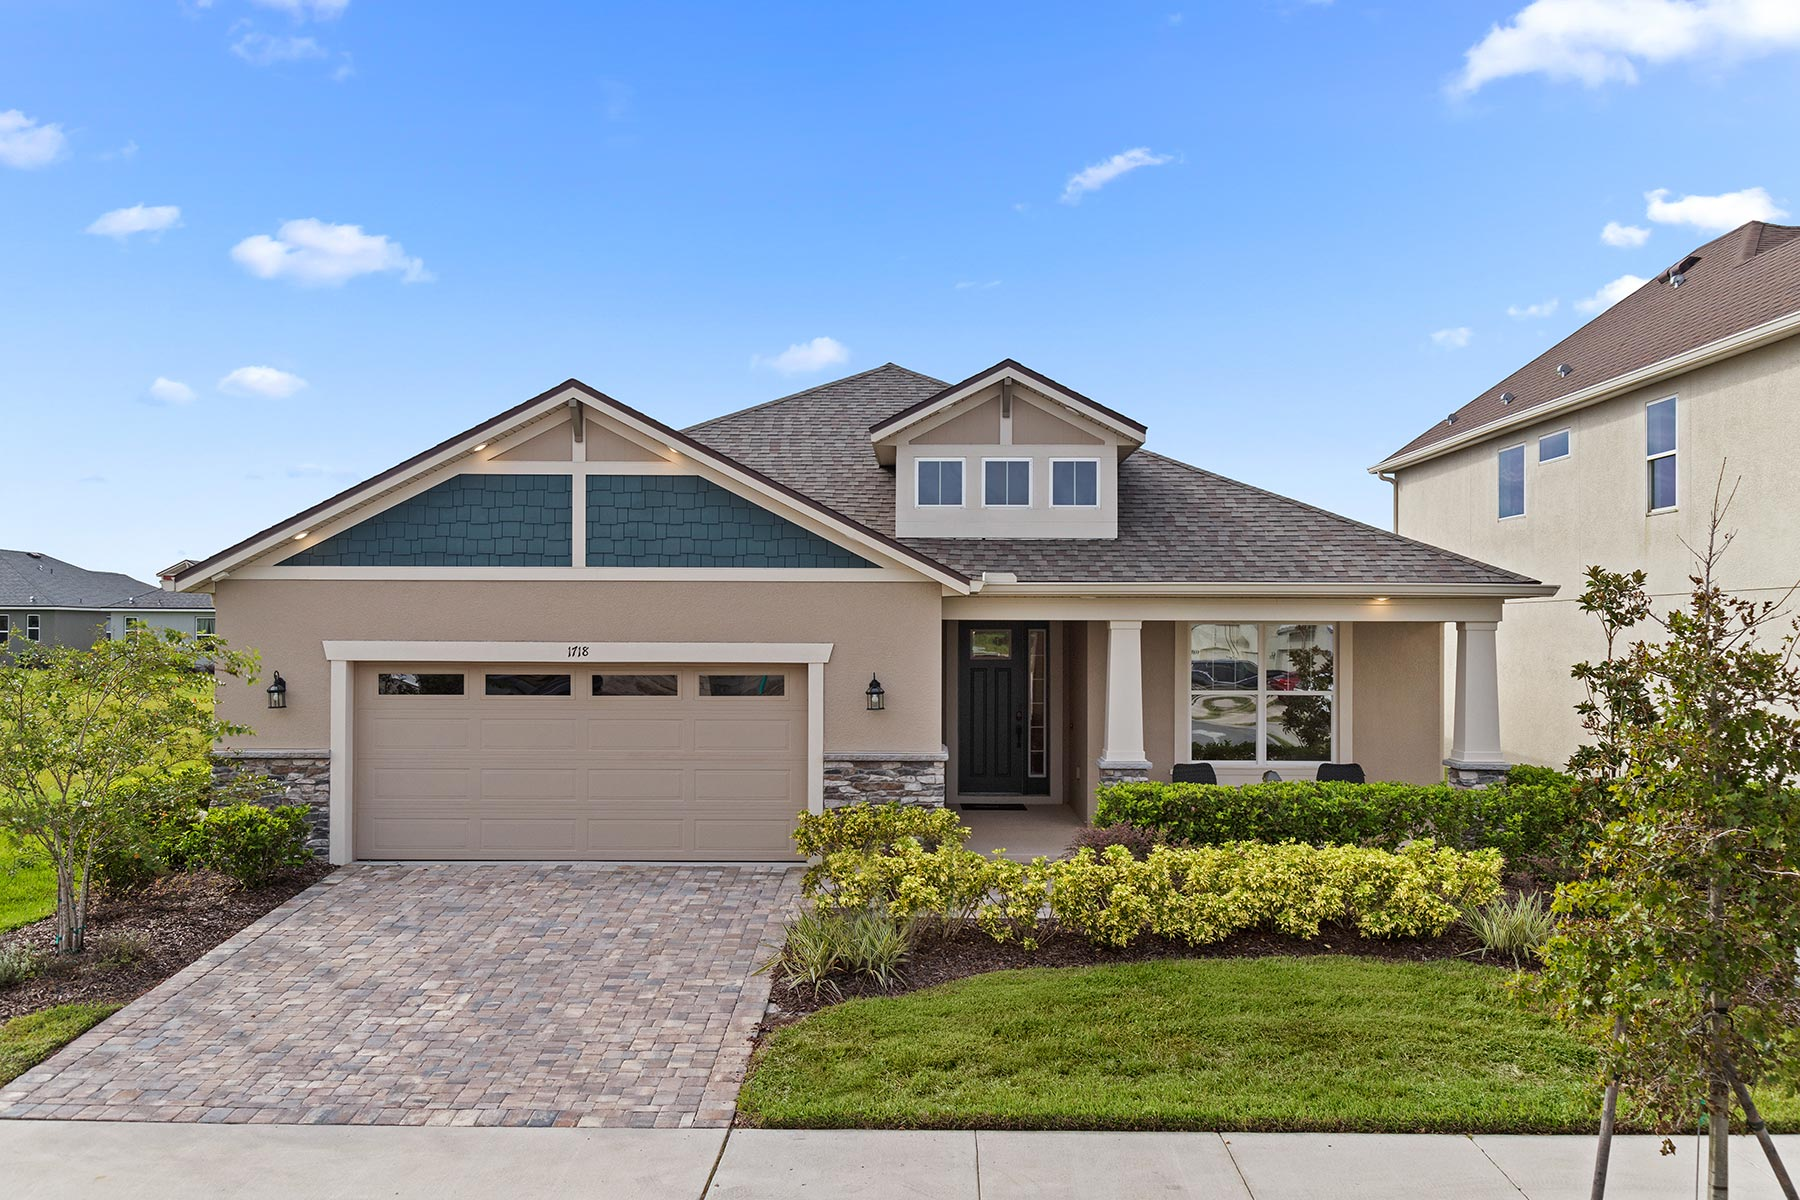 Glendale Plan Elevation Front at Tohoqua in Kissimmee Florida by Mattamy Homes